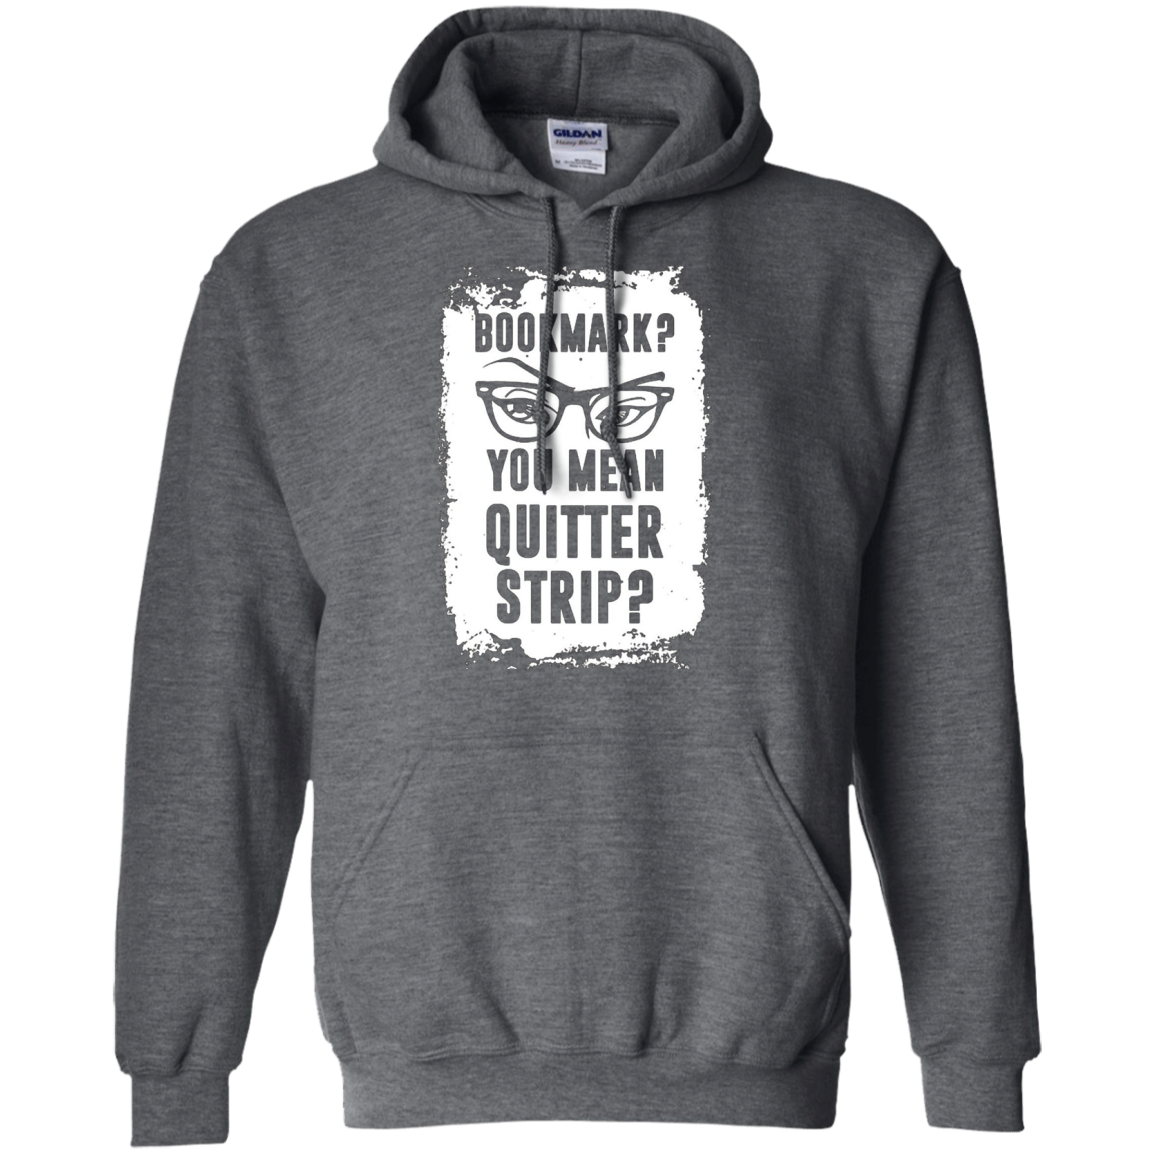 Bookmark you mean quitter strip - read book t shirt hoodie